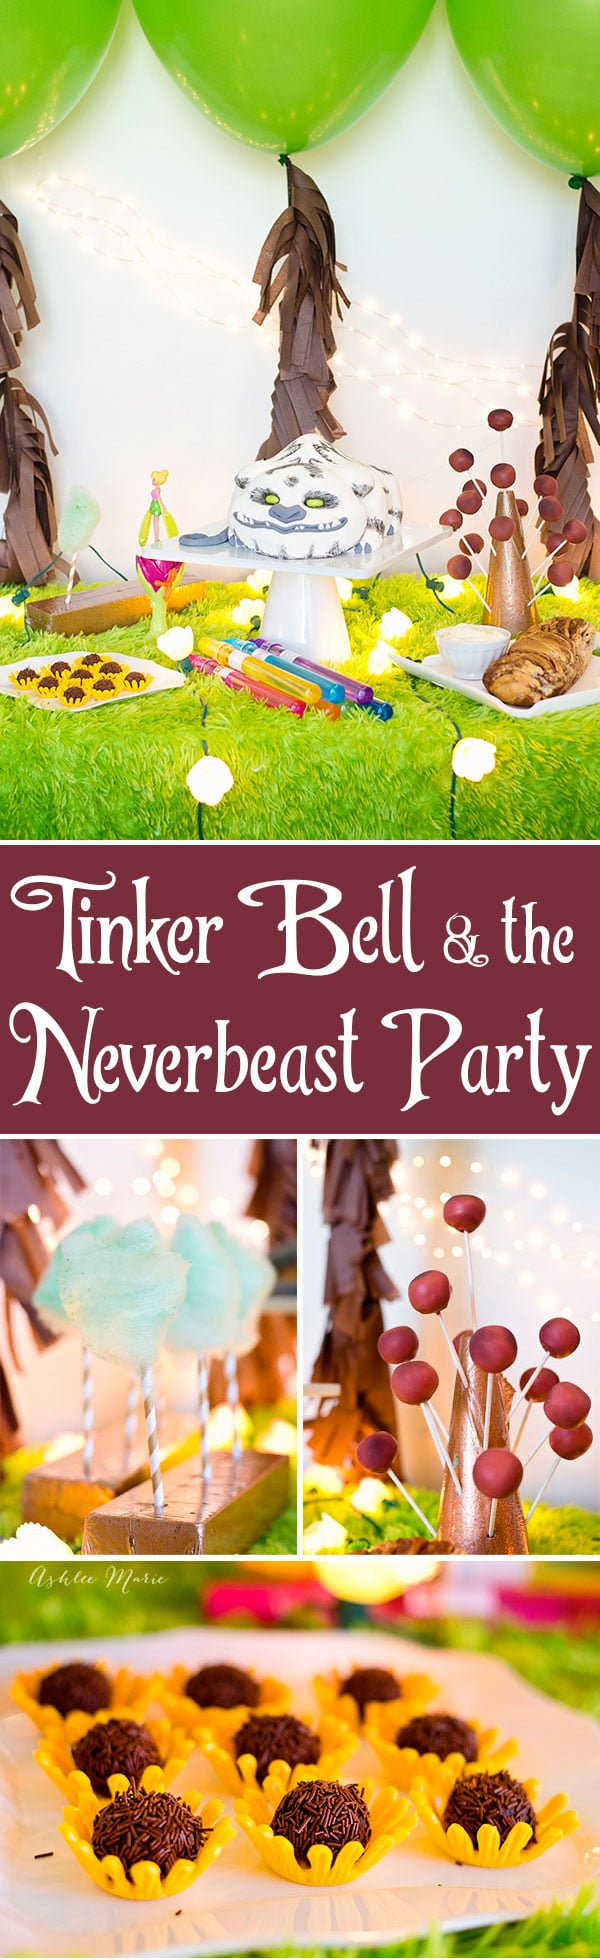 a party for the movie Tinker Bell and the Neverbeast, with decorations, themed food, an amazing cake and more